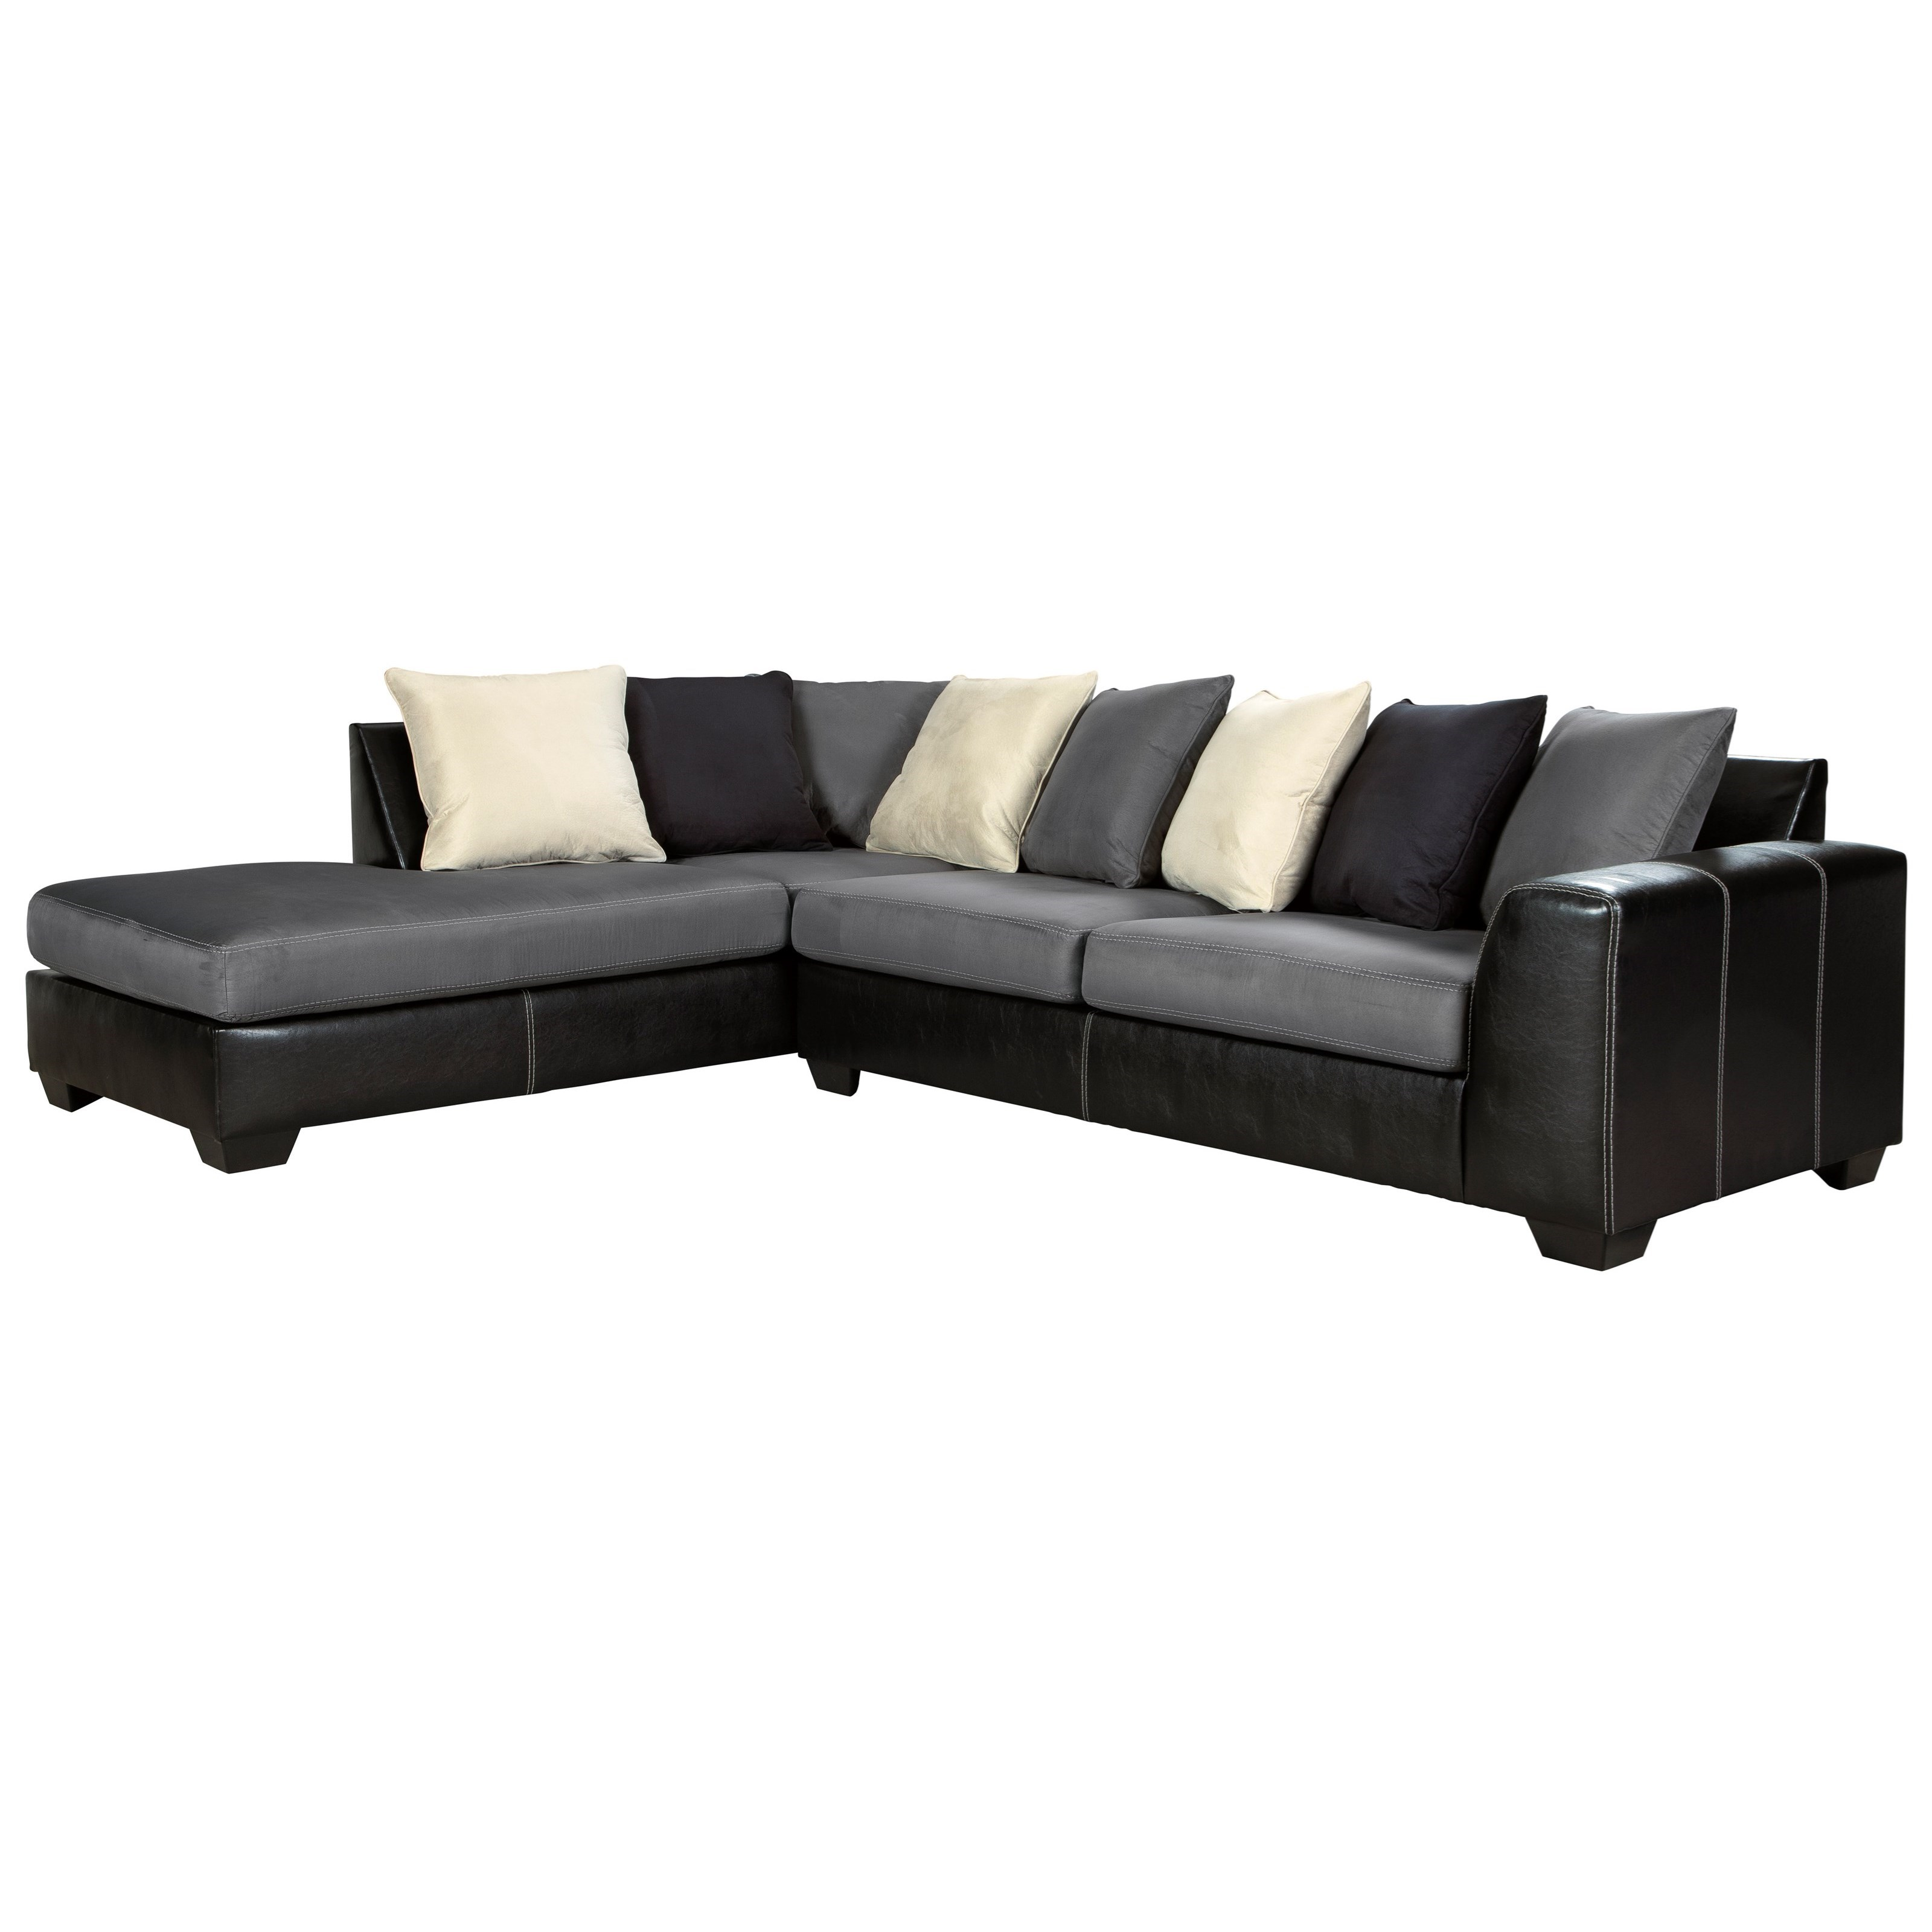 Jacurso Sectional Sofa with Chaise by Signature at Walker's Furniture